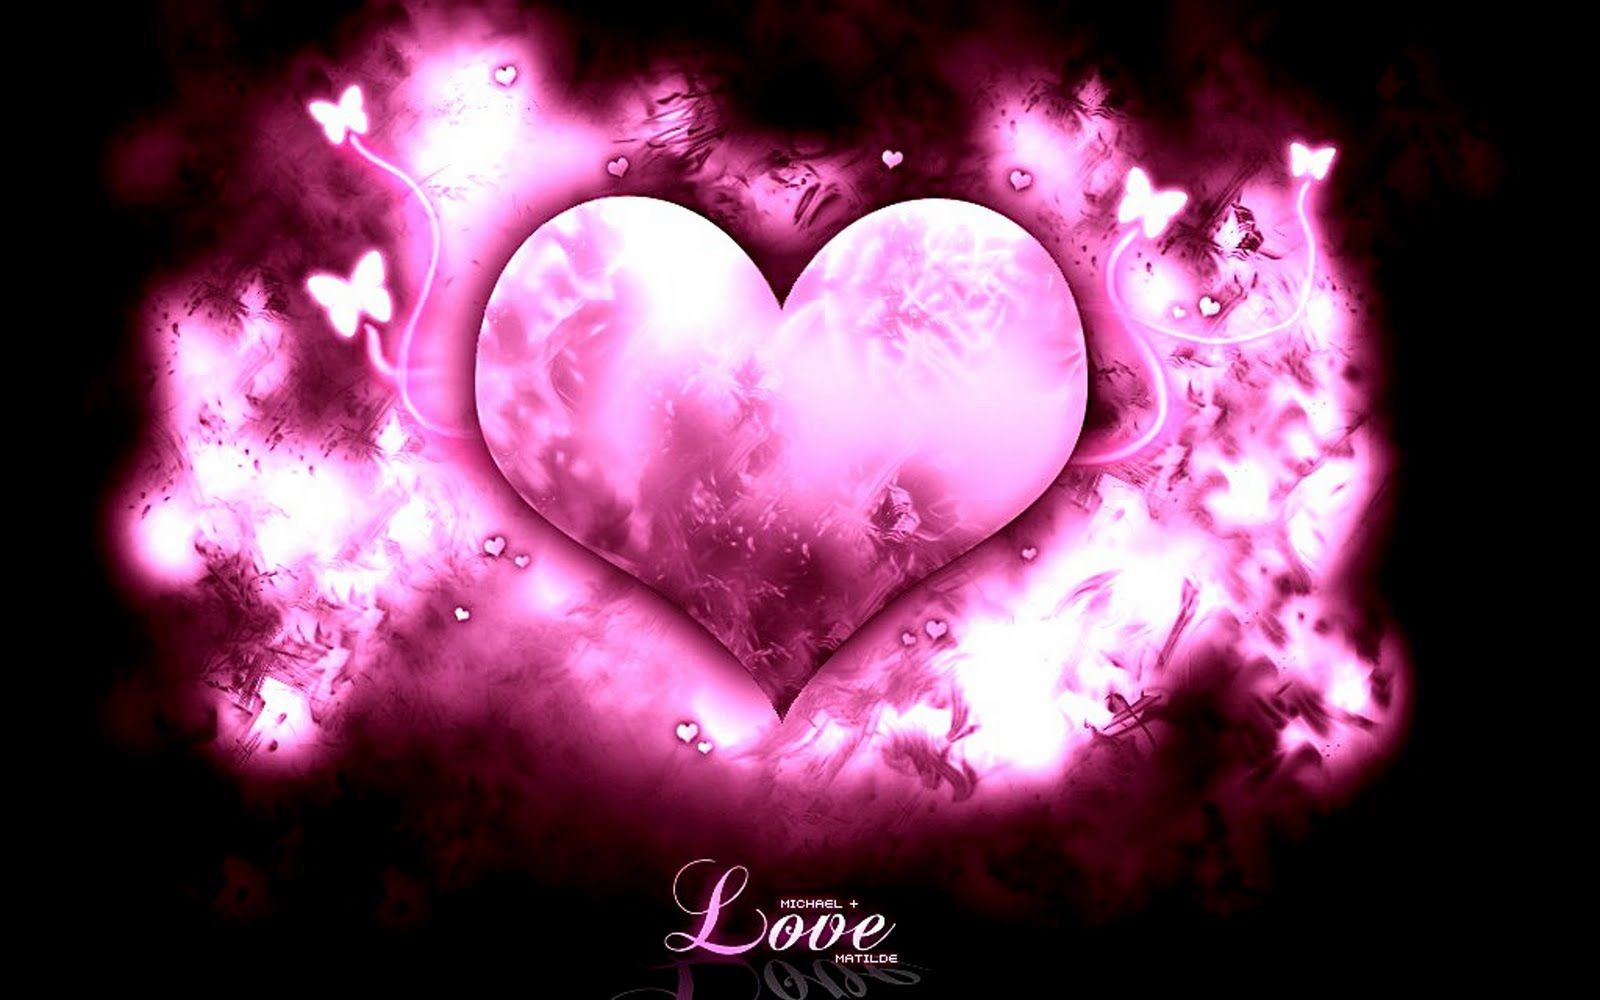 Cute Love Graphics Cute Pink Heart With Pink Shades And Black